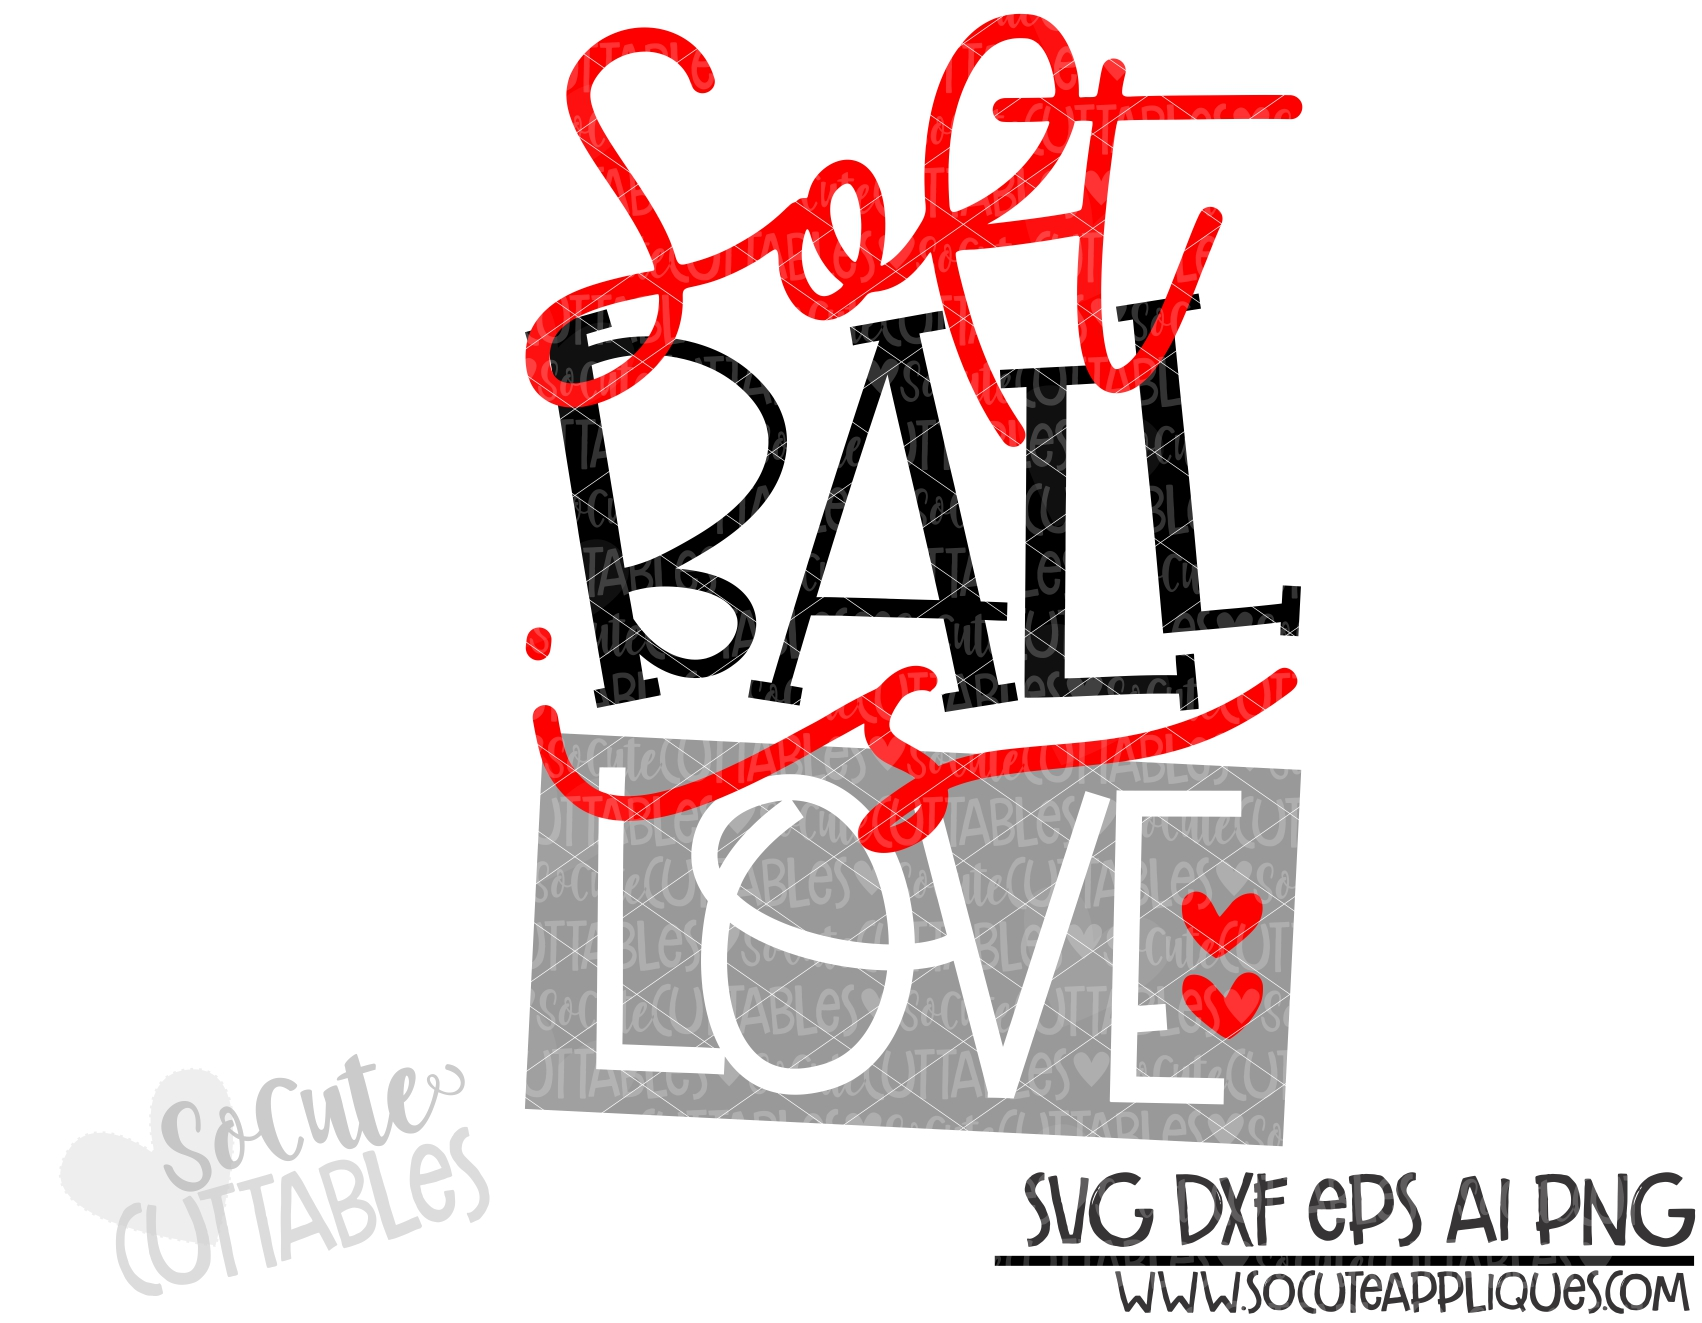 Download softball is love square 19 SCC SVG - socuteappliques.net